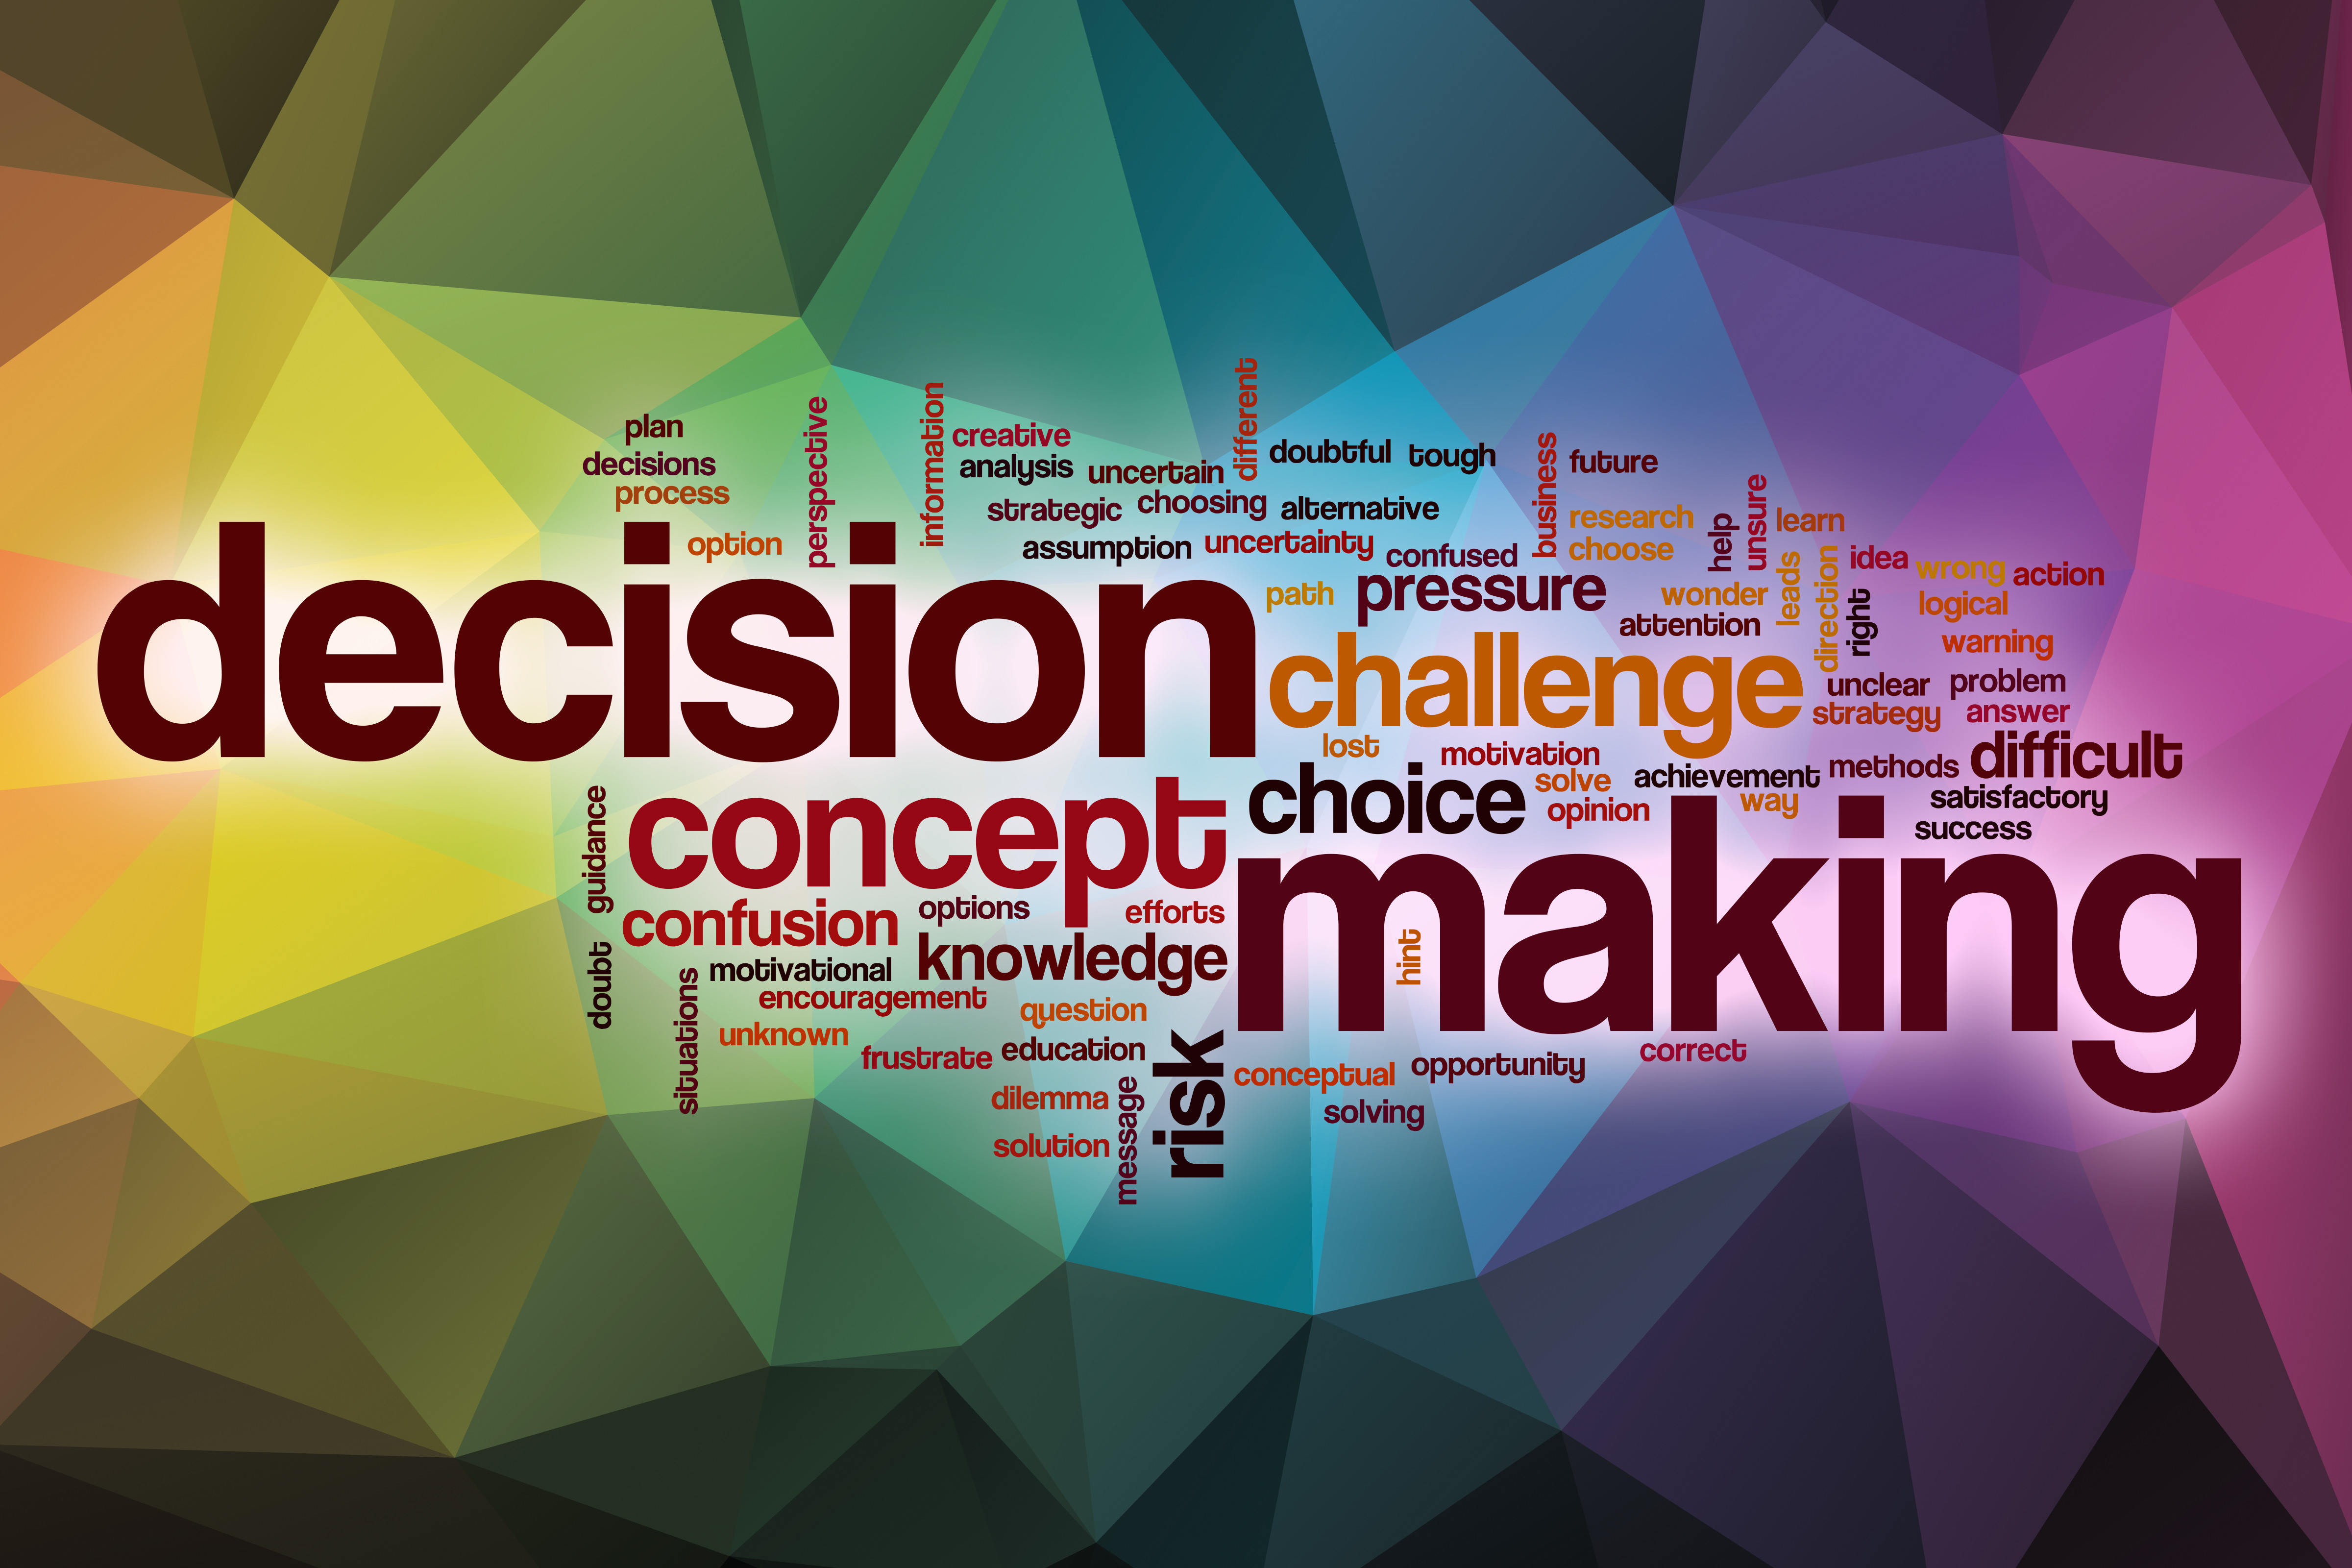 decision making challenges